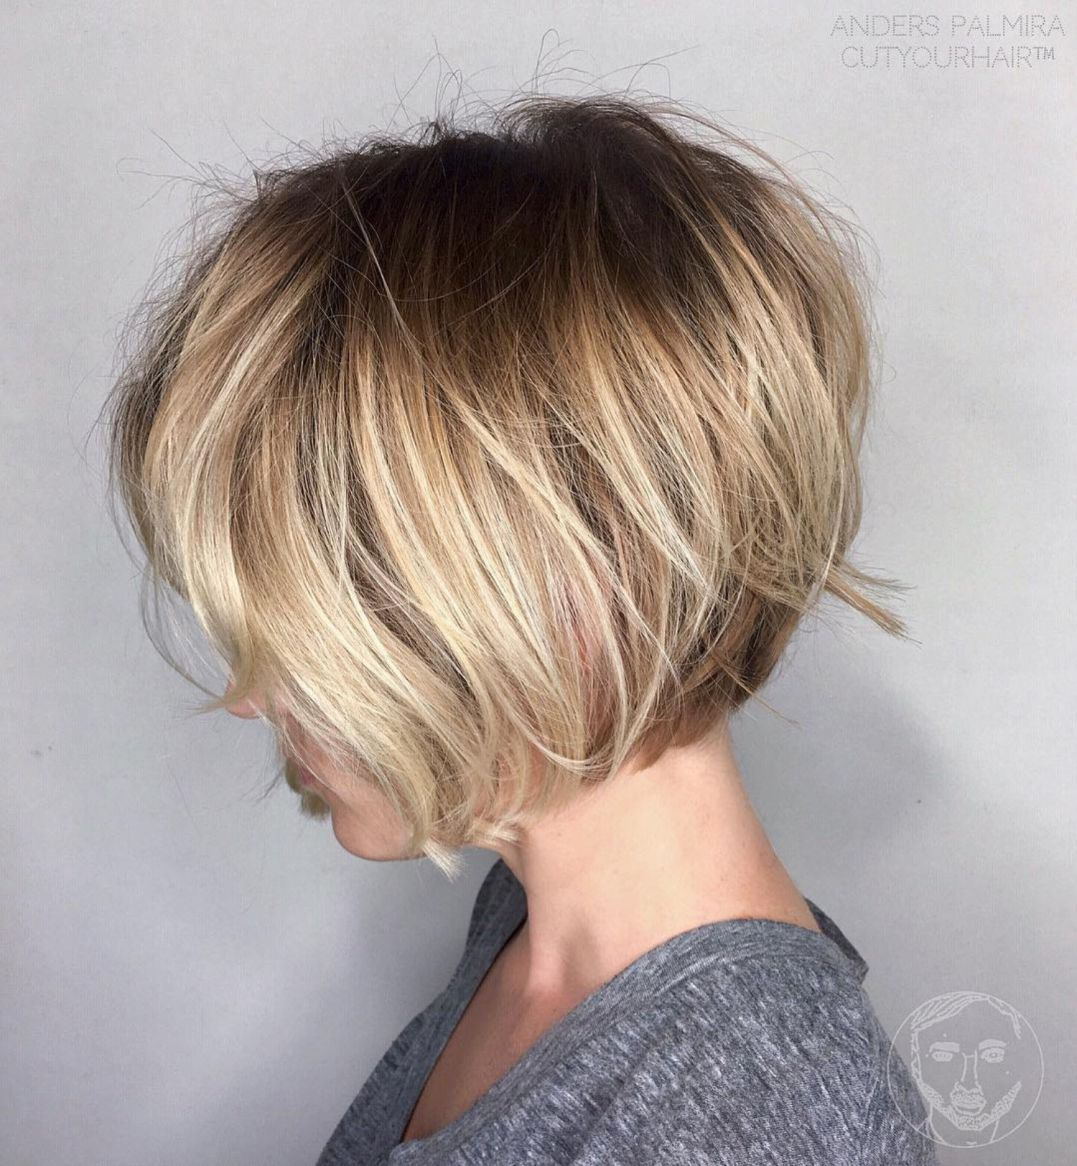 100 mind-blowing short hairstyles for fine hair | hair color